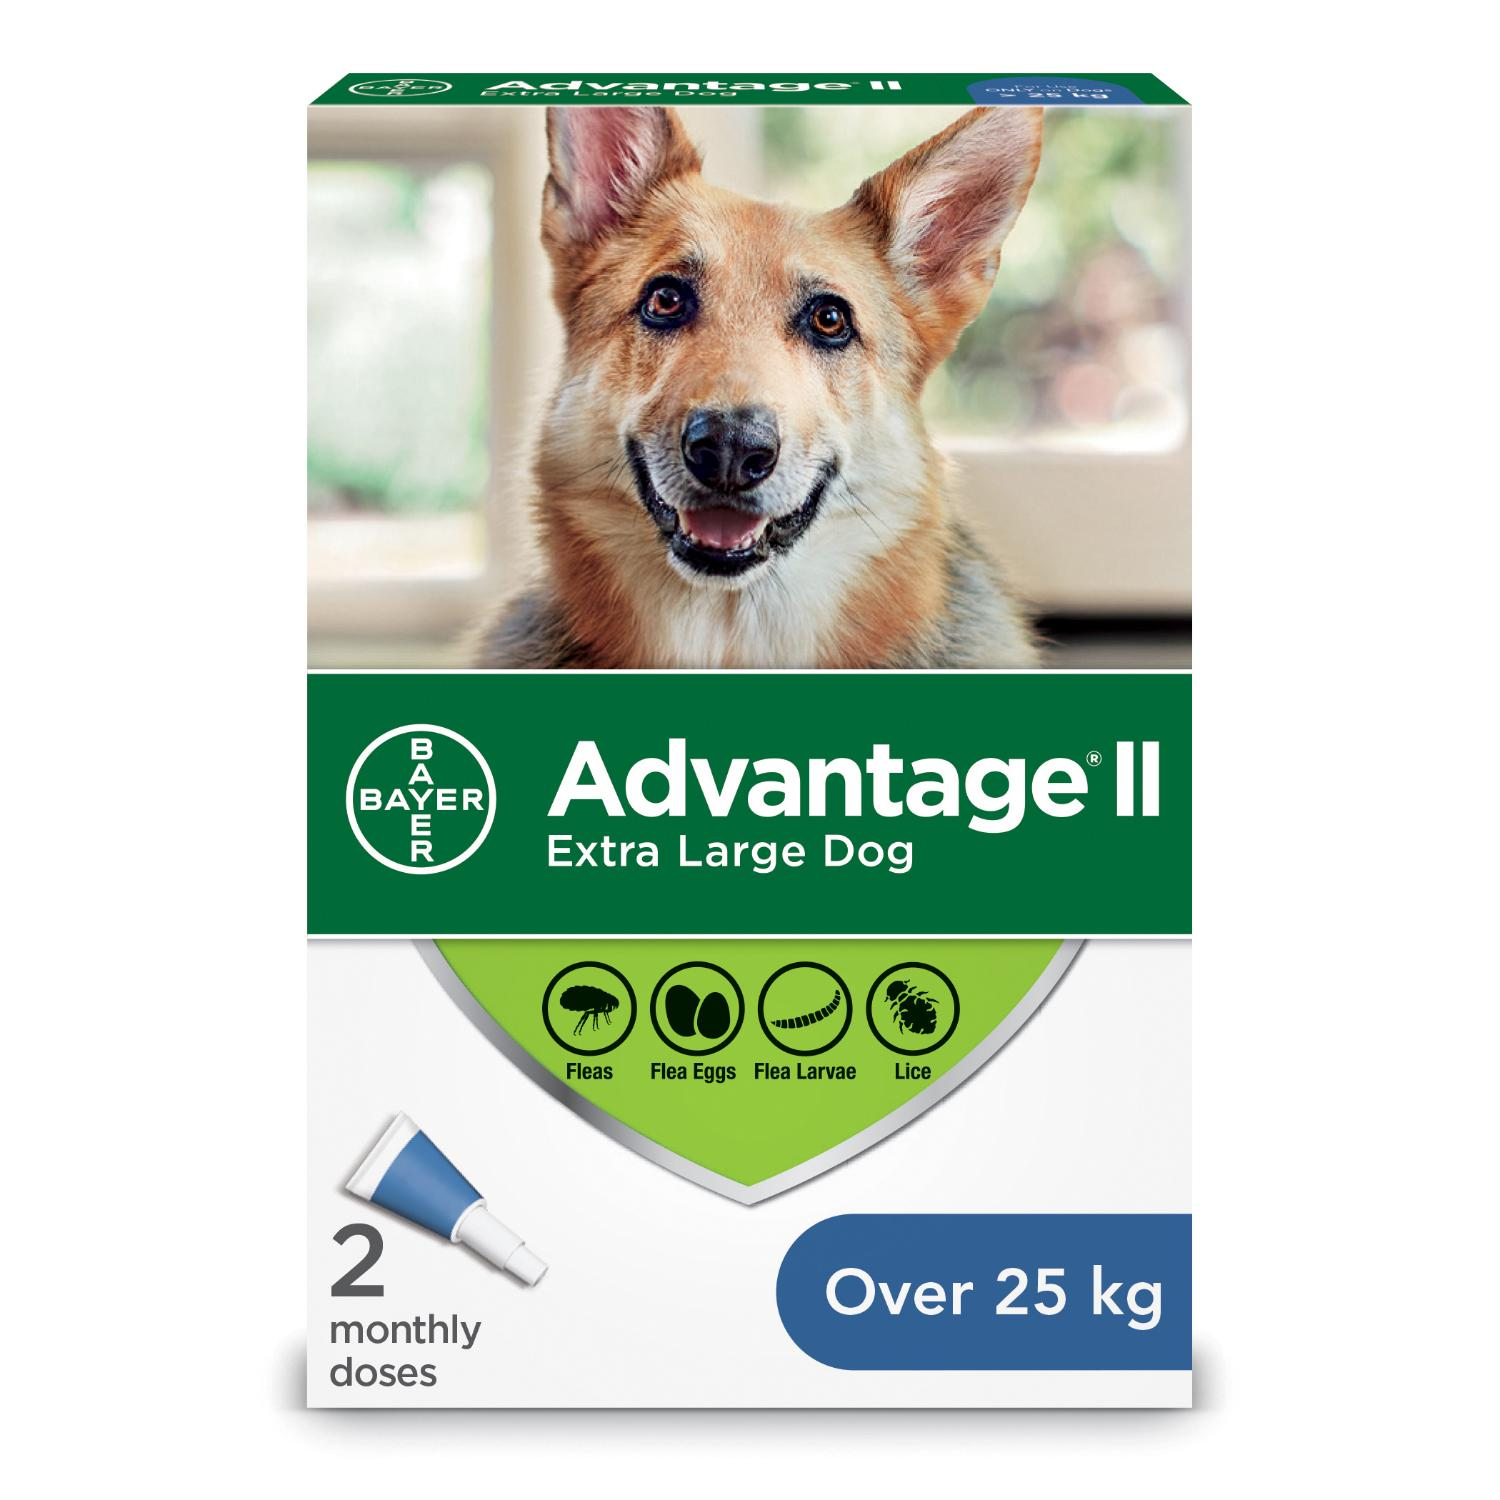 Bayer Advantage II Flea Protection for Extra Large Dogs over 25-kg Image